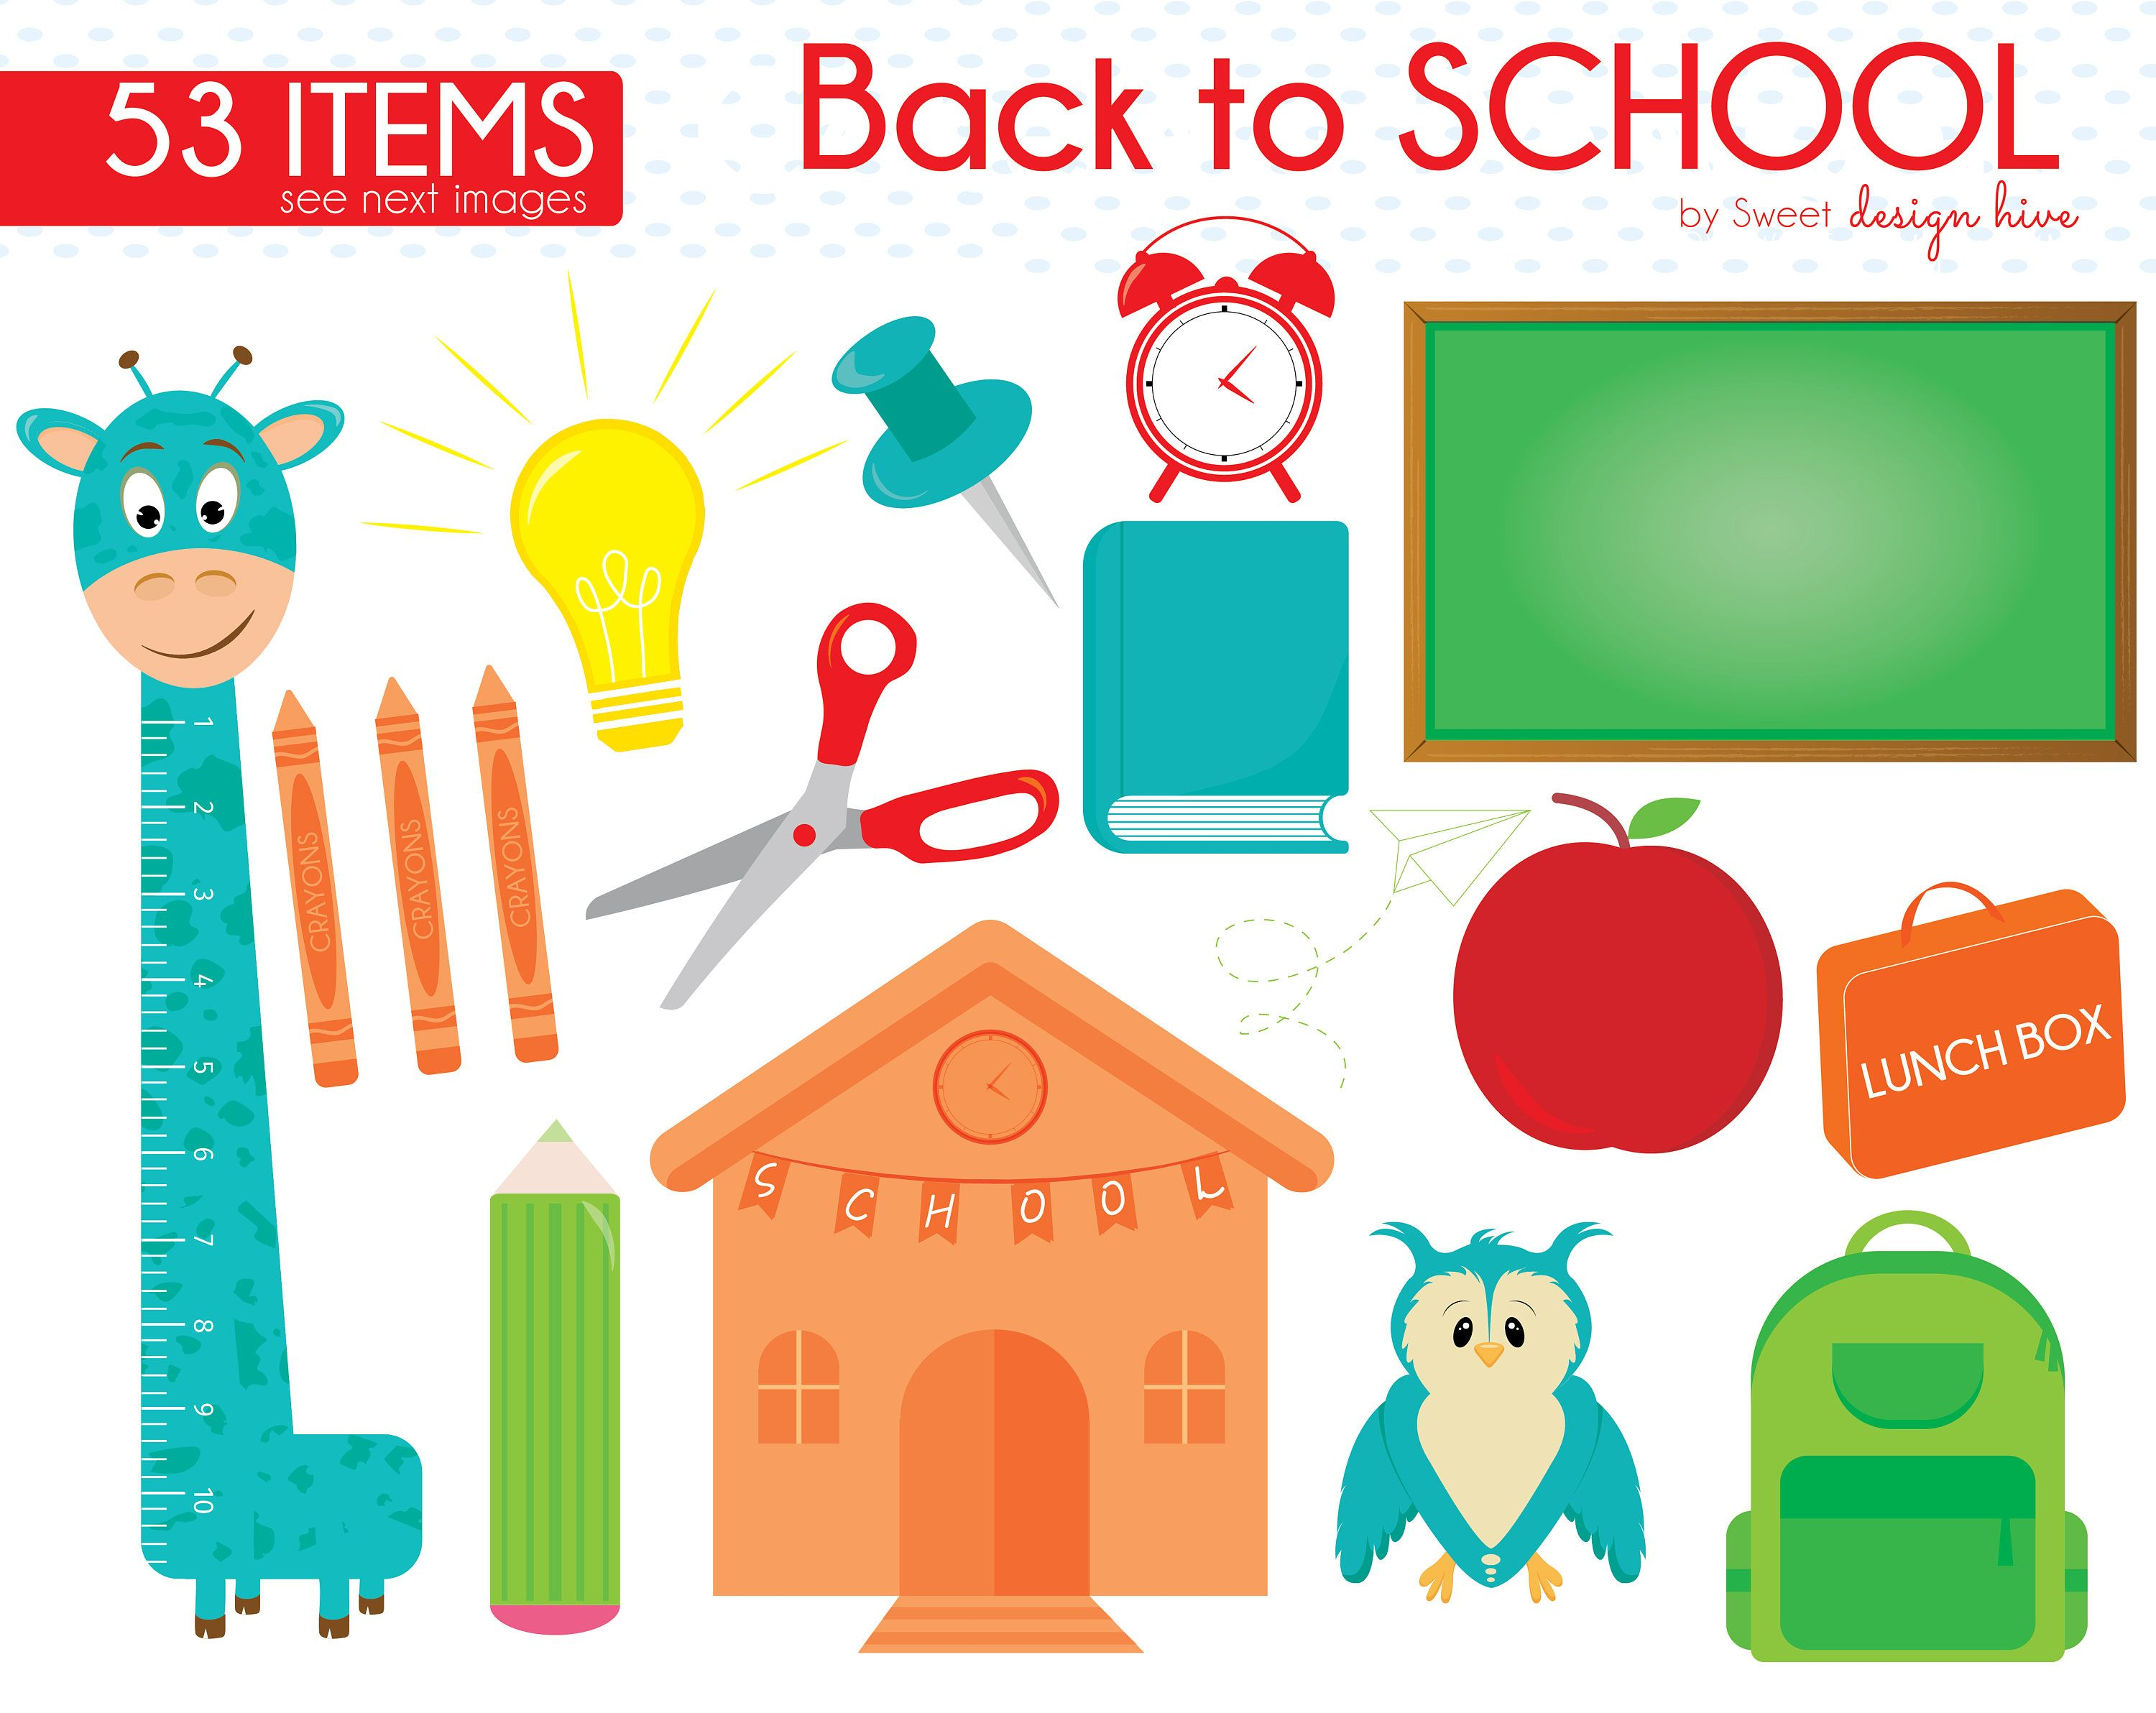 School supply chalkboard clipart image download Back to School Clipart, School Clipart, School Supplies ... image download